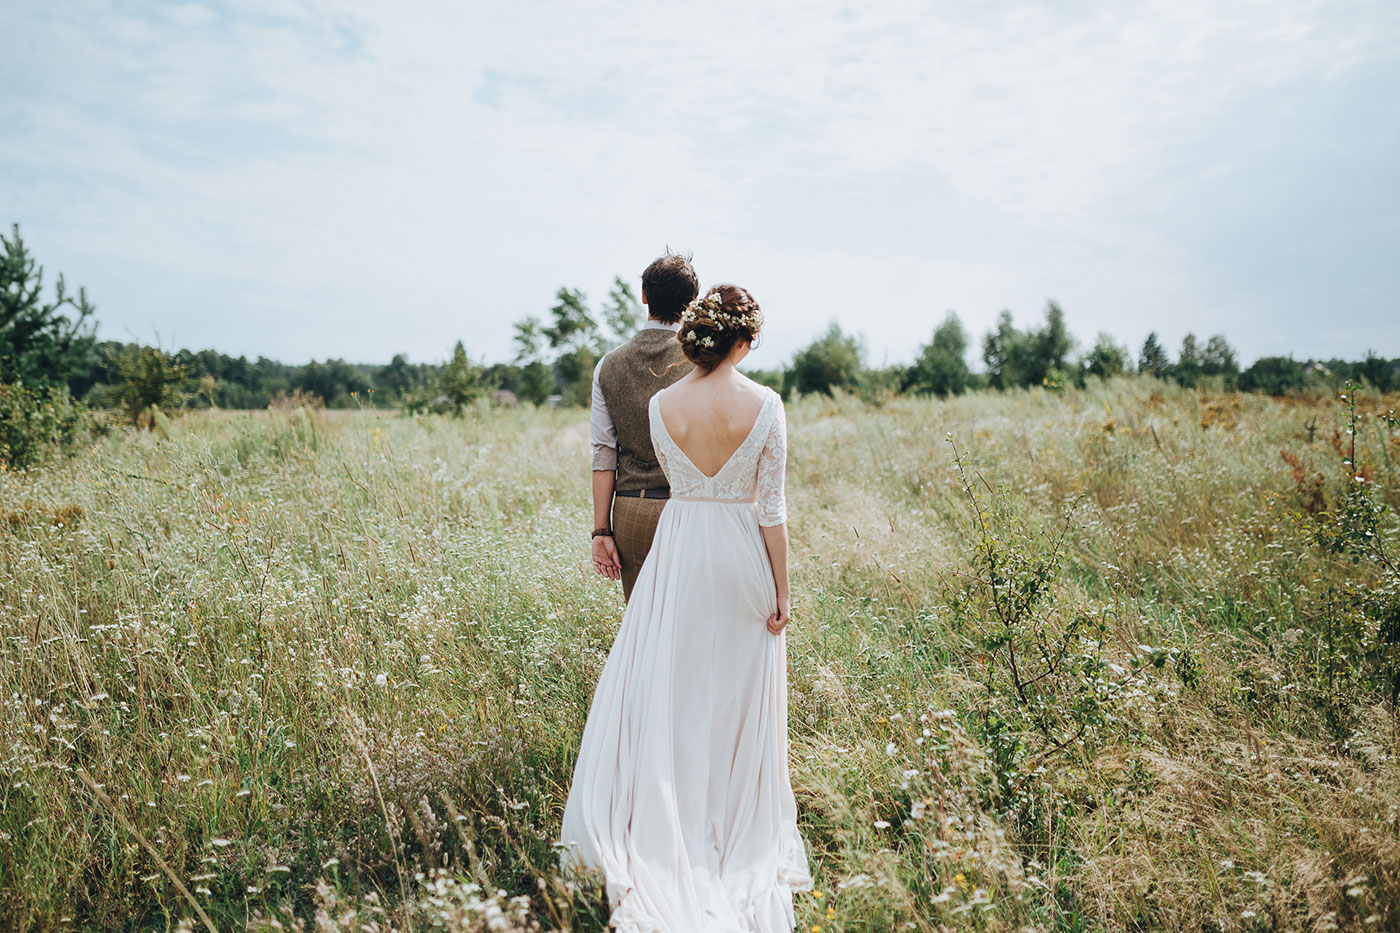 How Many Hours Should you Hire a Wedding Photographer for?